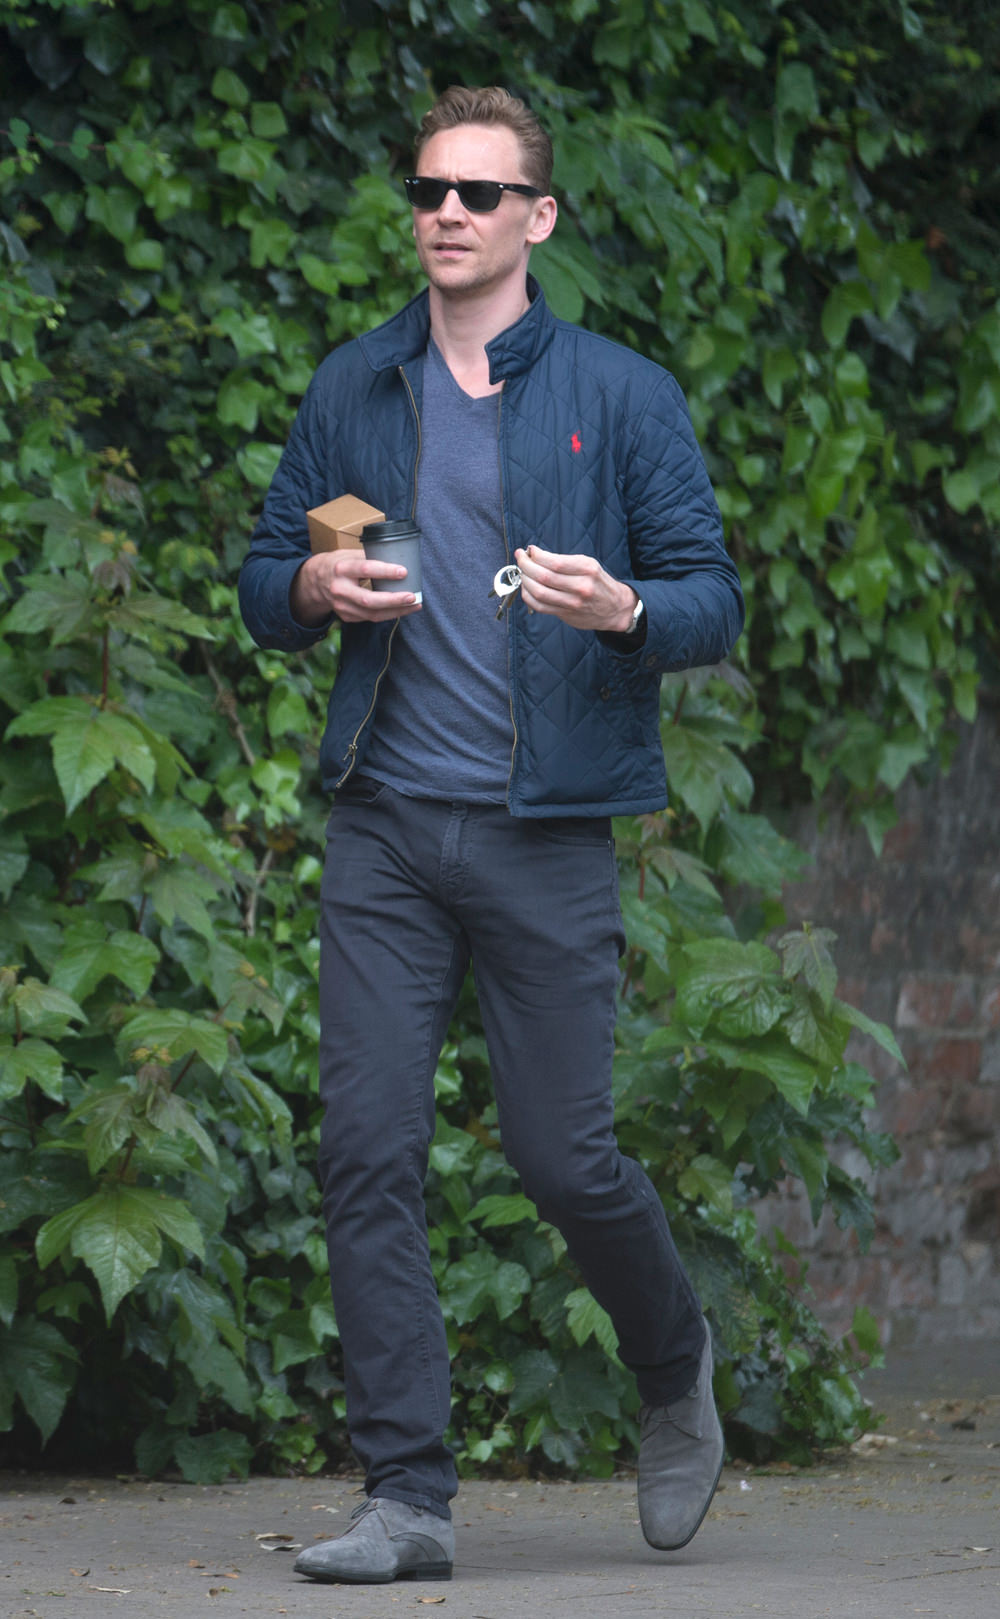 tom hiddleston out and about in central london tom lorenzo. Black Bedroom Furniture Sets. Home Design Ideas